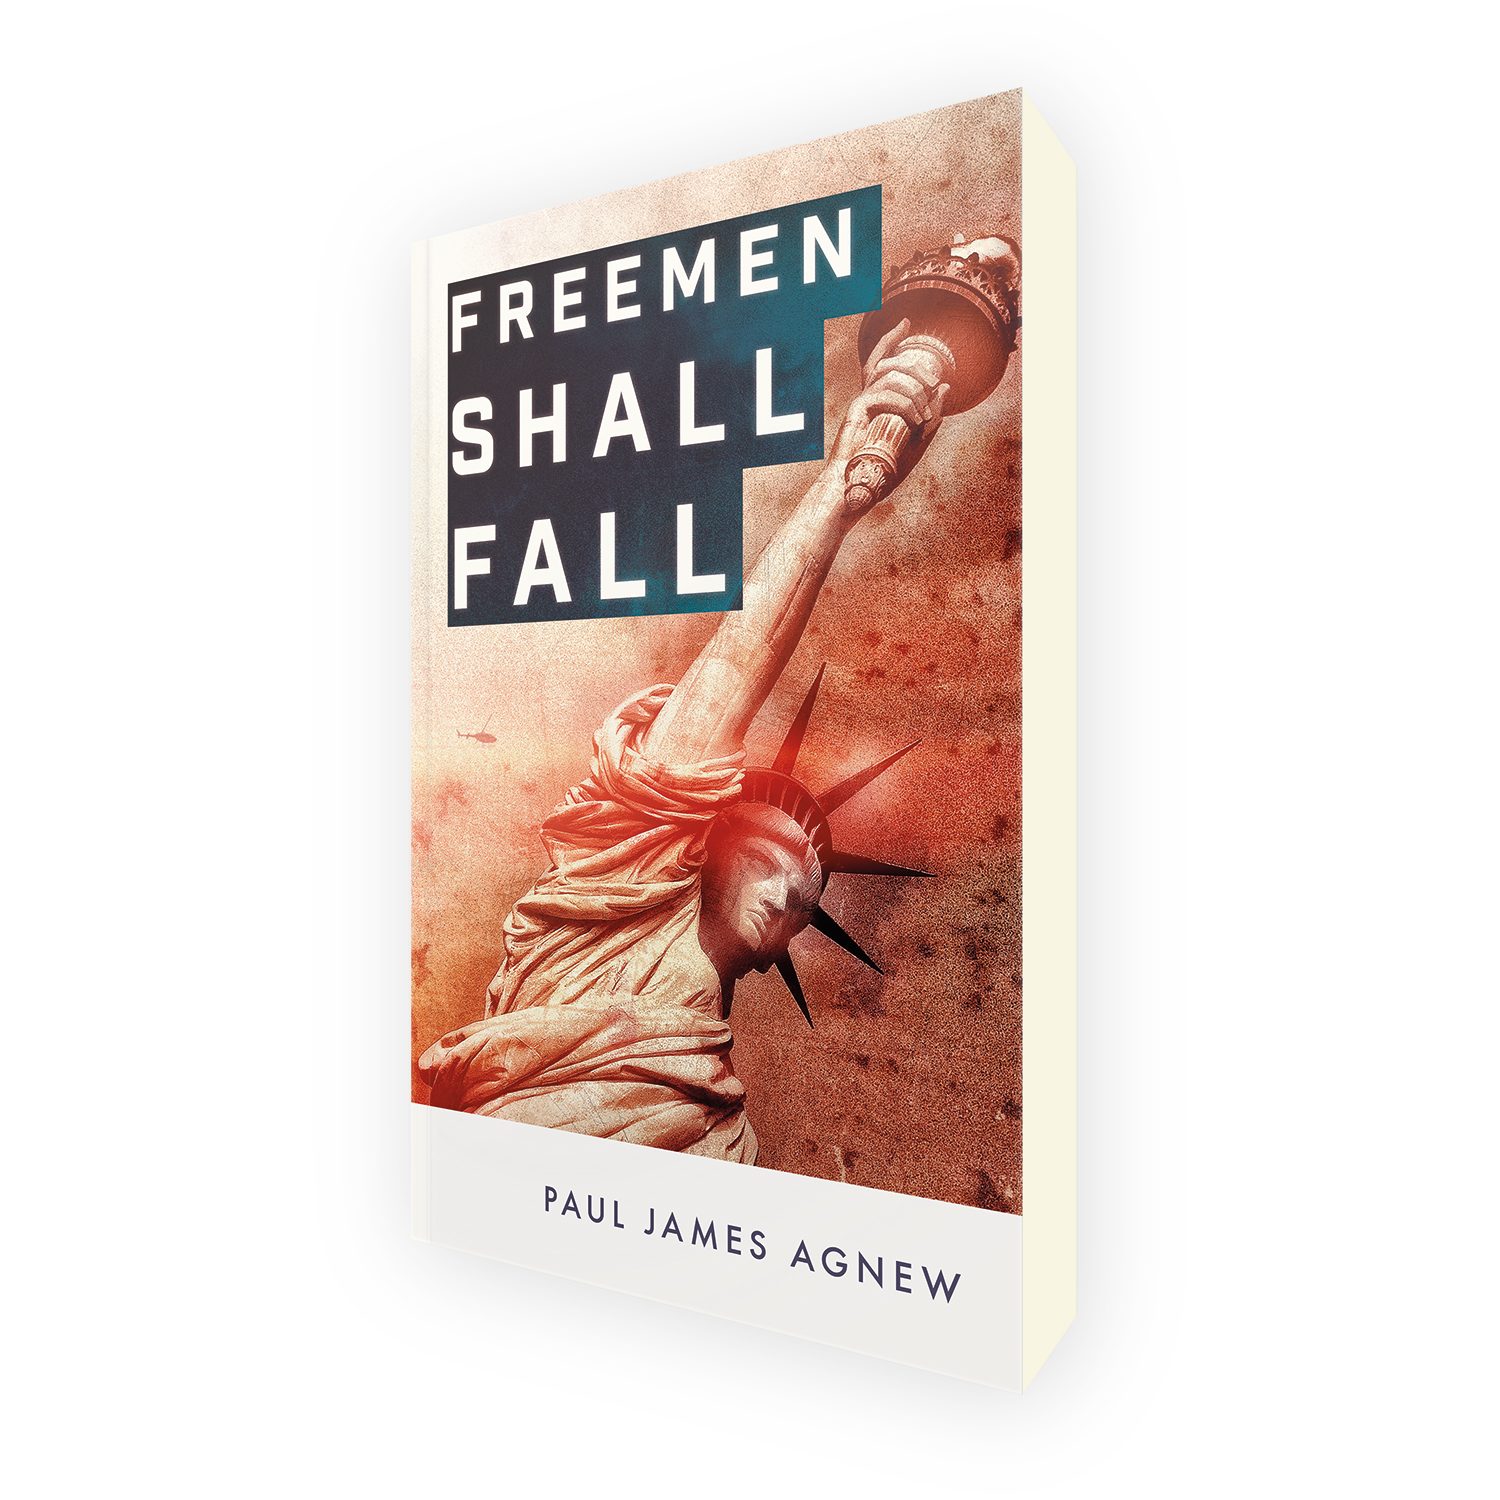 'Freemen Shall Fall' is a bespoke cover design for a topical modern political thriller. The book cover was designed by Mark Thomas, of coverness.com. To find out more about my book design services, please visit www.coverness.com.